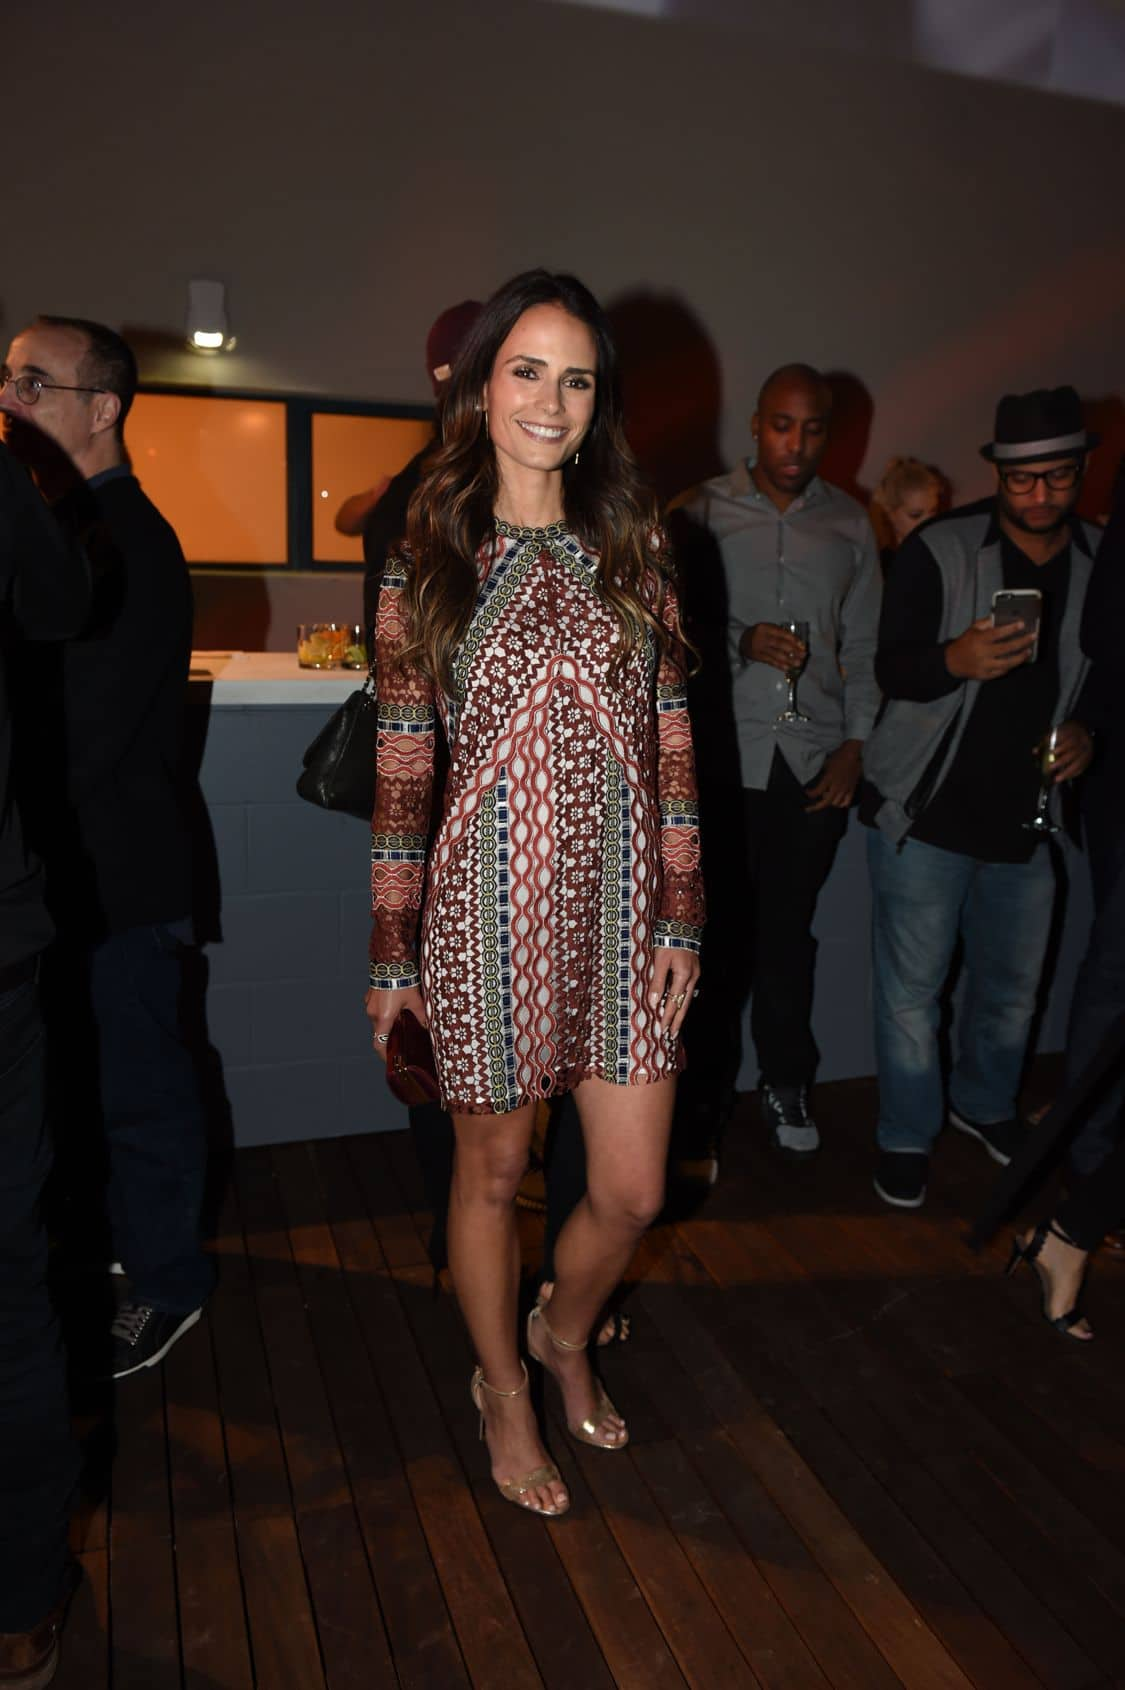 LETHAL WEAPON: Jordana Brewster celebrates at the LETHAL WEAPON premiere party at NeueHouse Hollywood on Monday, Sept. 12, in Los Angeles, CA, sponsored by Ford. LETHAL WEAPON premieres Wednesday, Sept. 21 (8:00-9:00 PM ET/PT) on FOX. ©2016 Fox Broadcasting Co. CR: Frank Micelotta/FOX